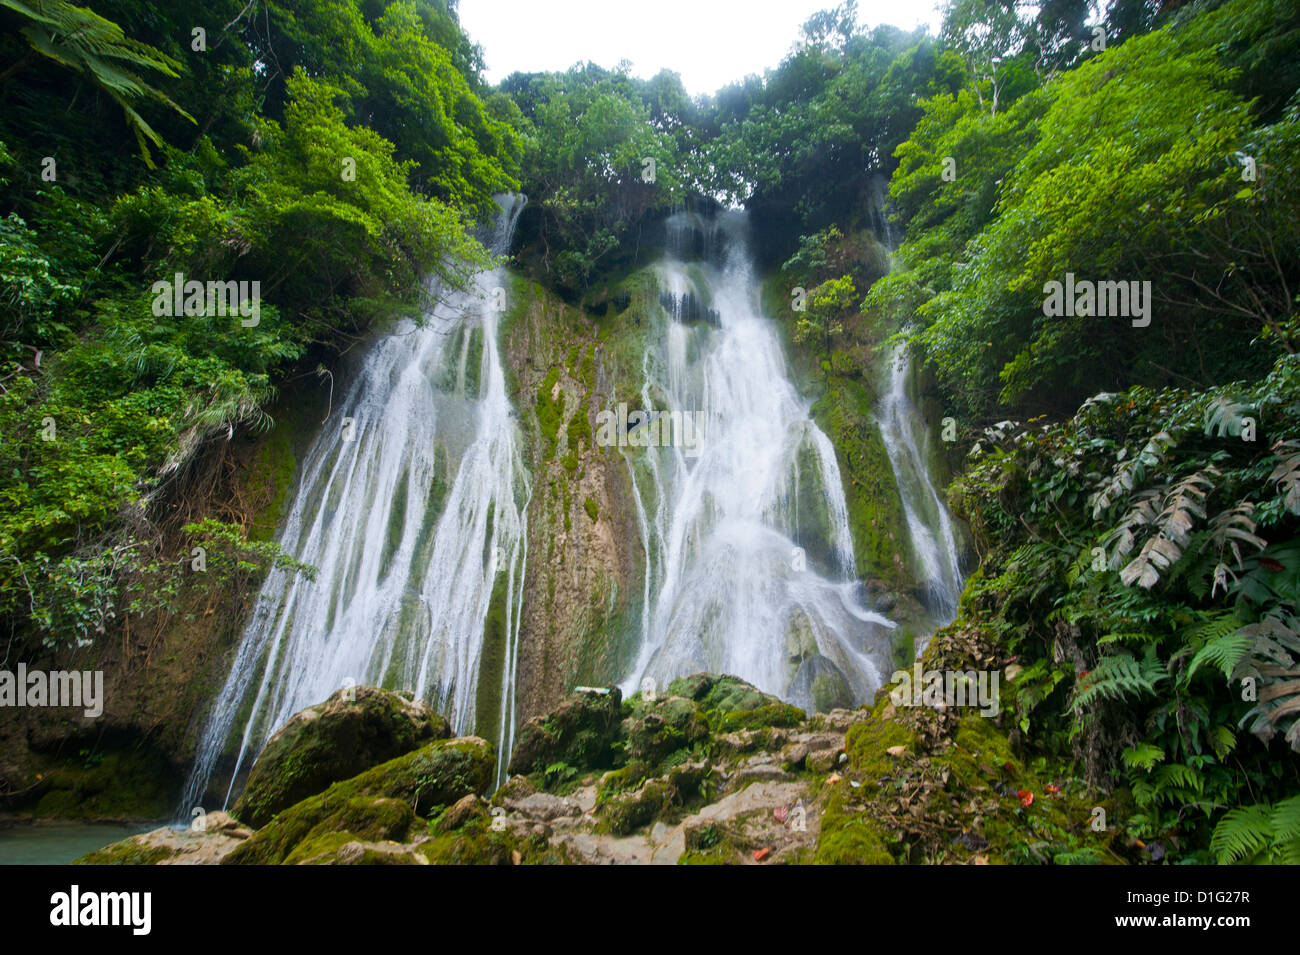 Beautiful Mele-Maat cascades in Port Vila, Island of Efate, Vanuatu, South Pacific, Pacific - Stock Image